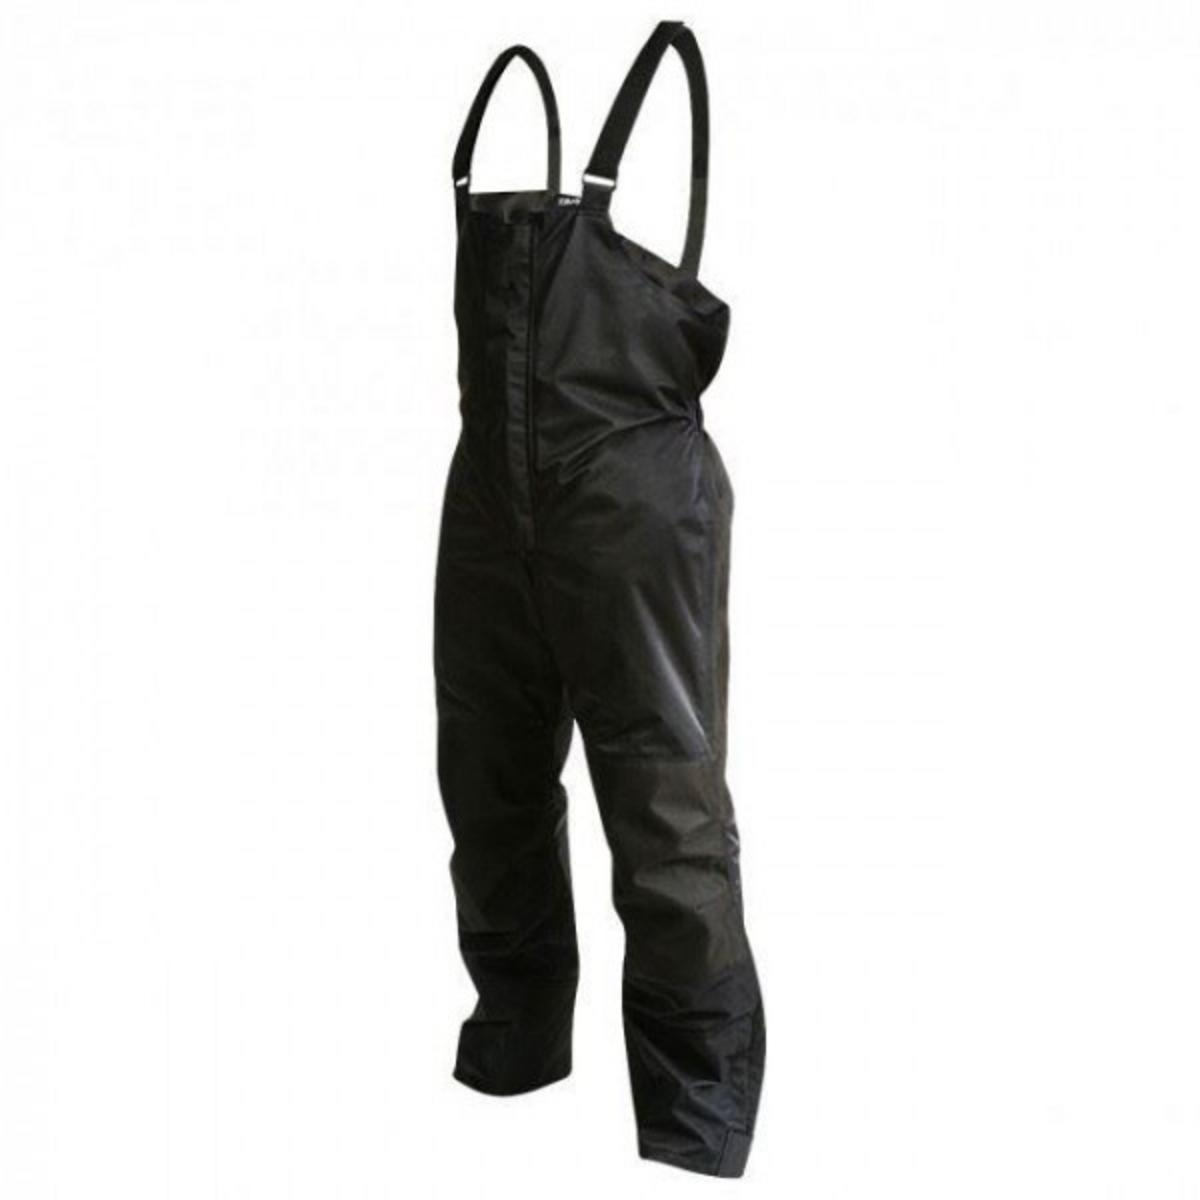 EX DISPLAY DAIWA MATCH BIB & BRACE DMBB-XL SIZE XL BLACK